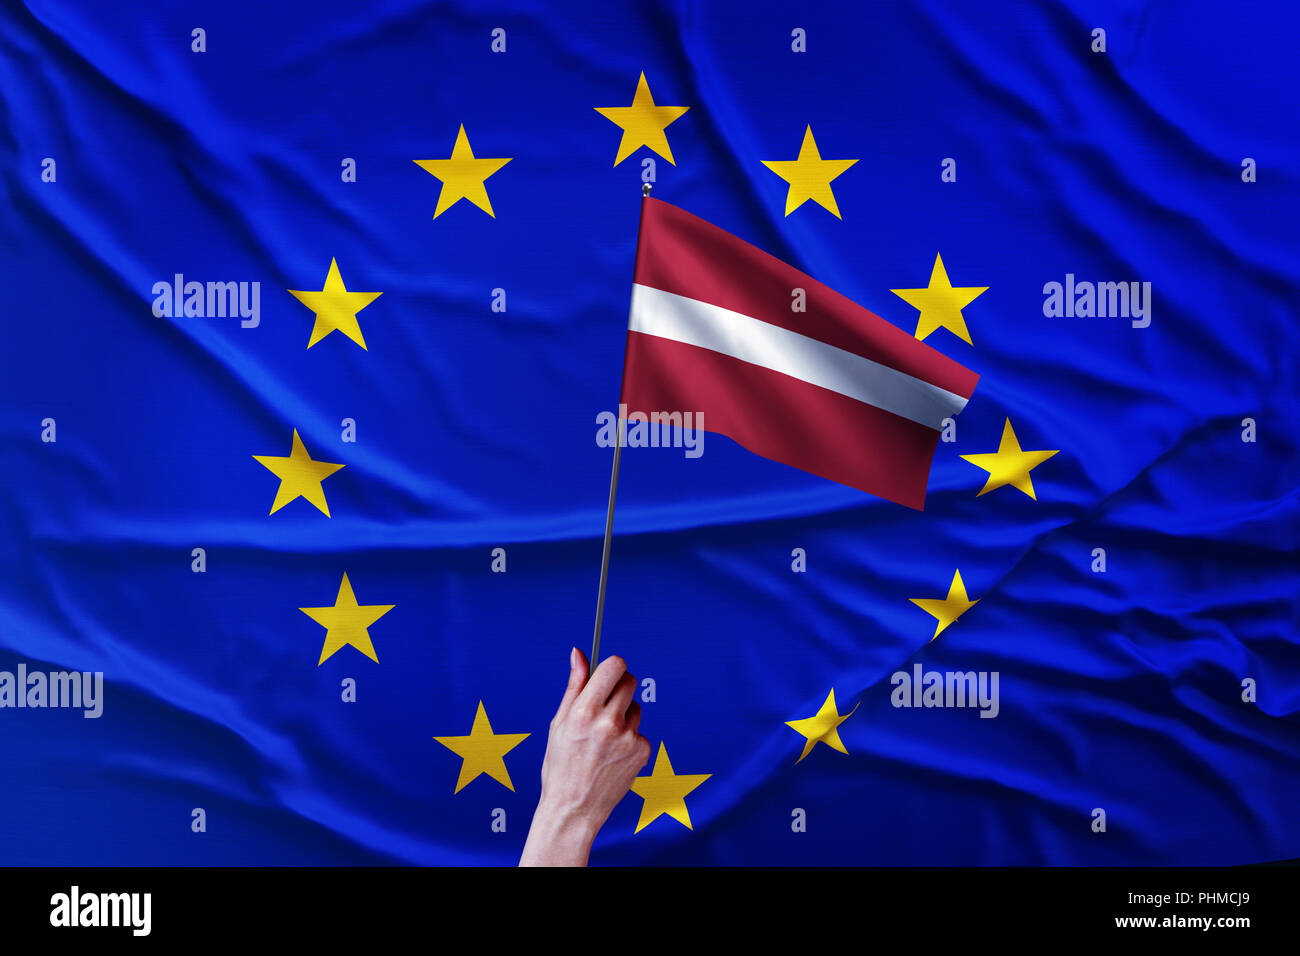 Flag of the European Union and Latvia - Stock Image